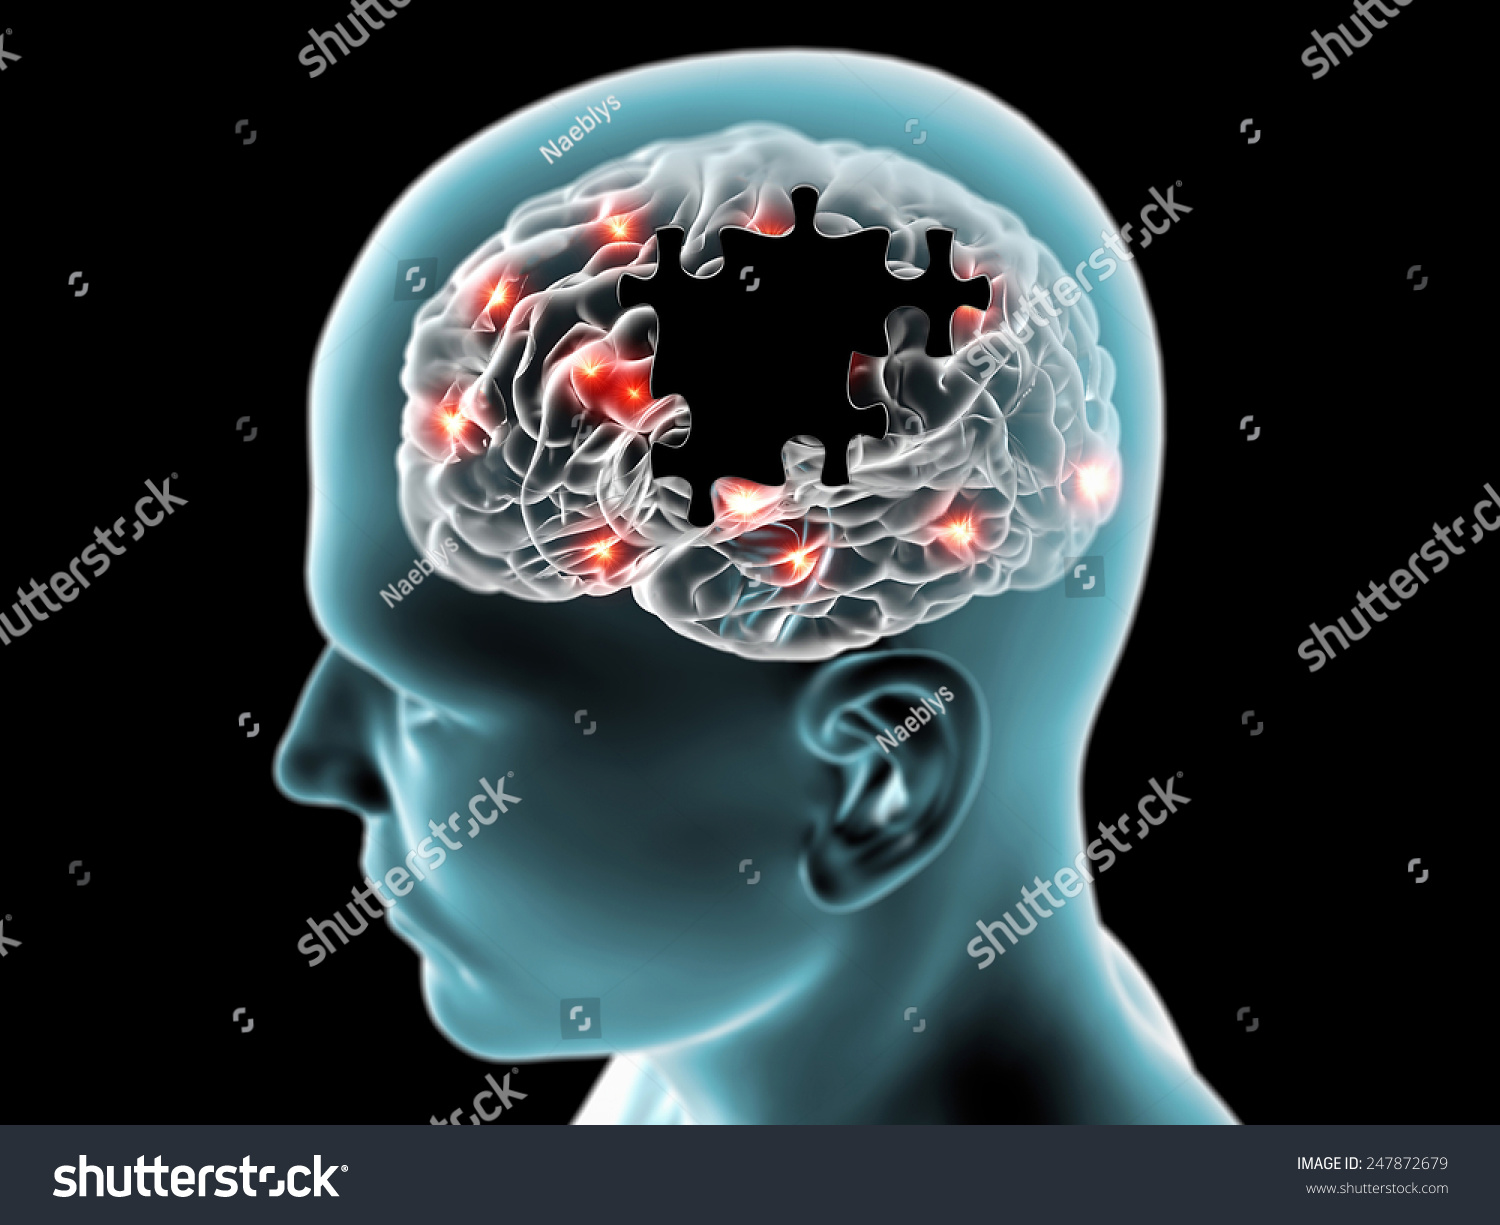 Image result for human cognition is a puzzle